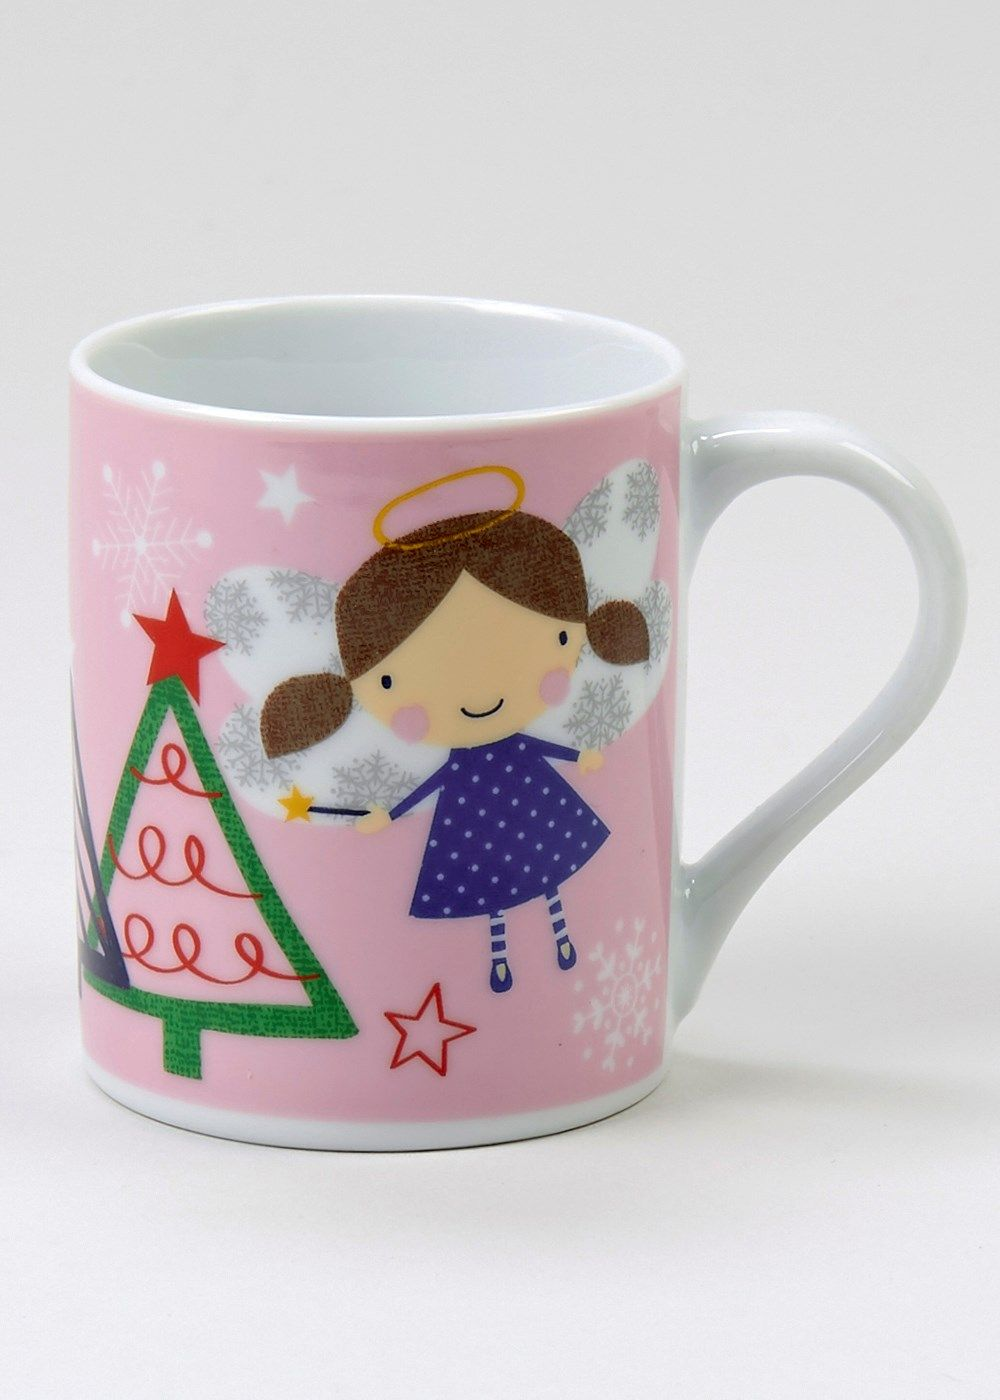 Christmas Shop Christmas Mugs Christmas Shopping Thoughtful Christmas Gifts